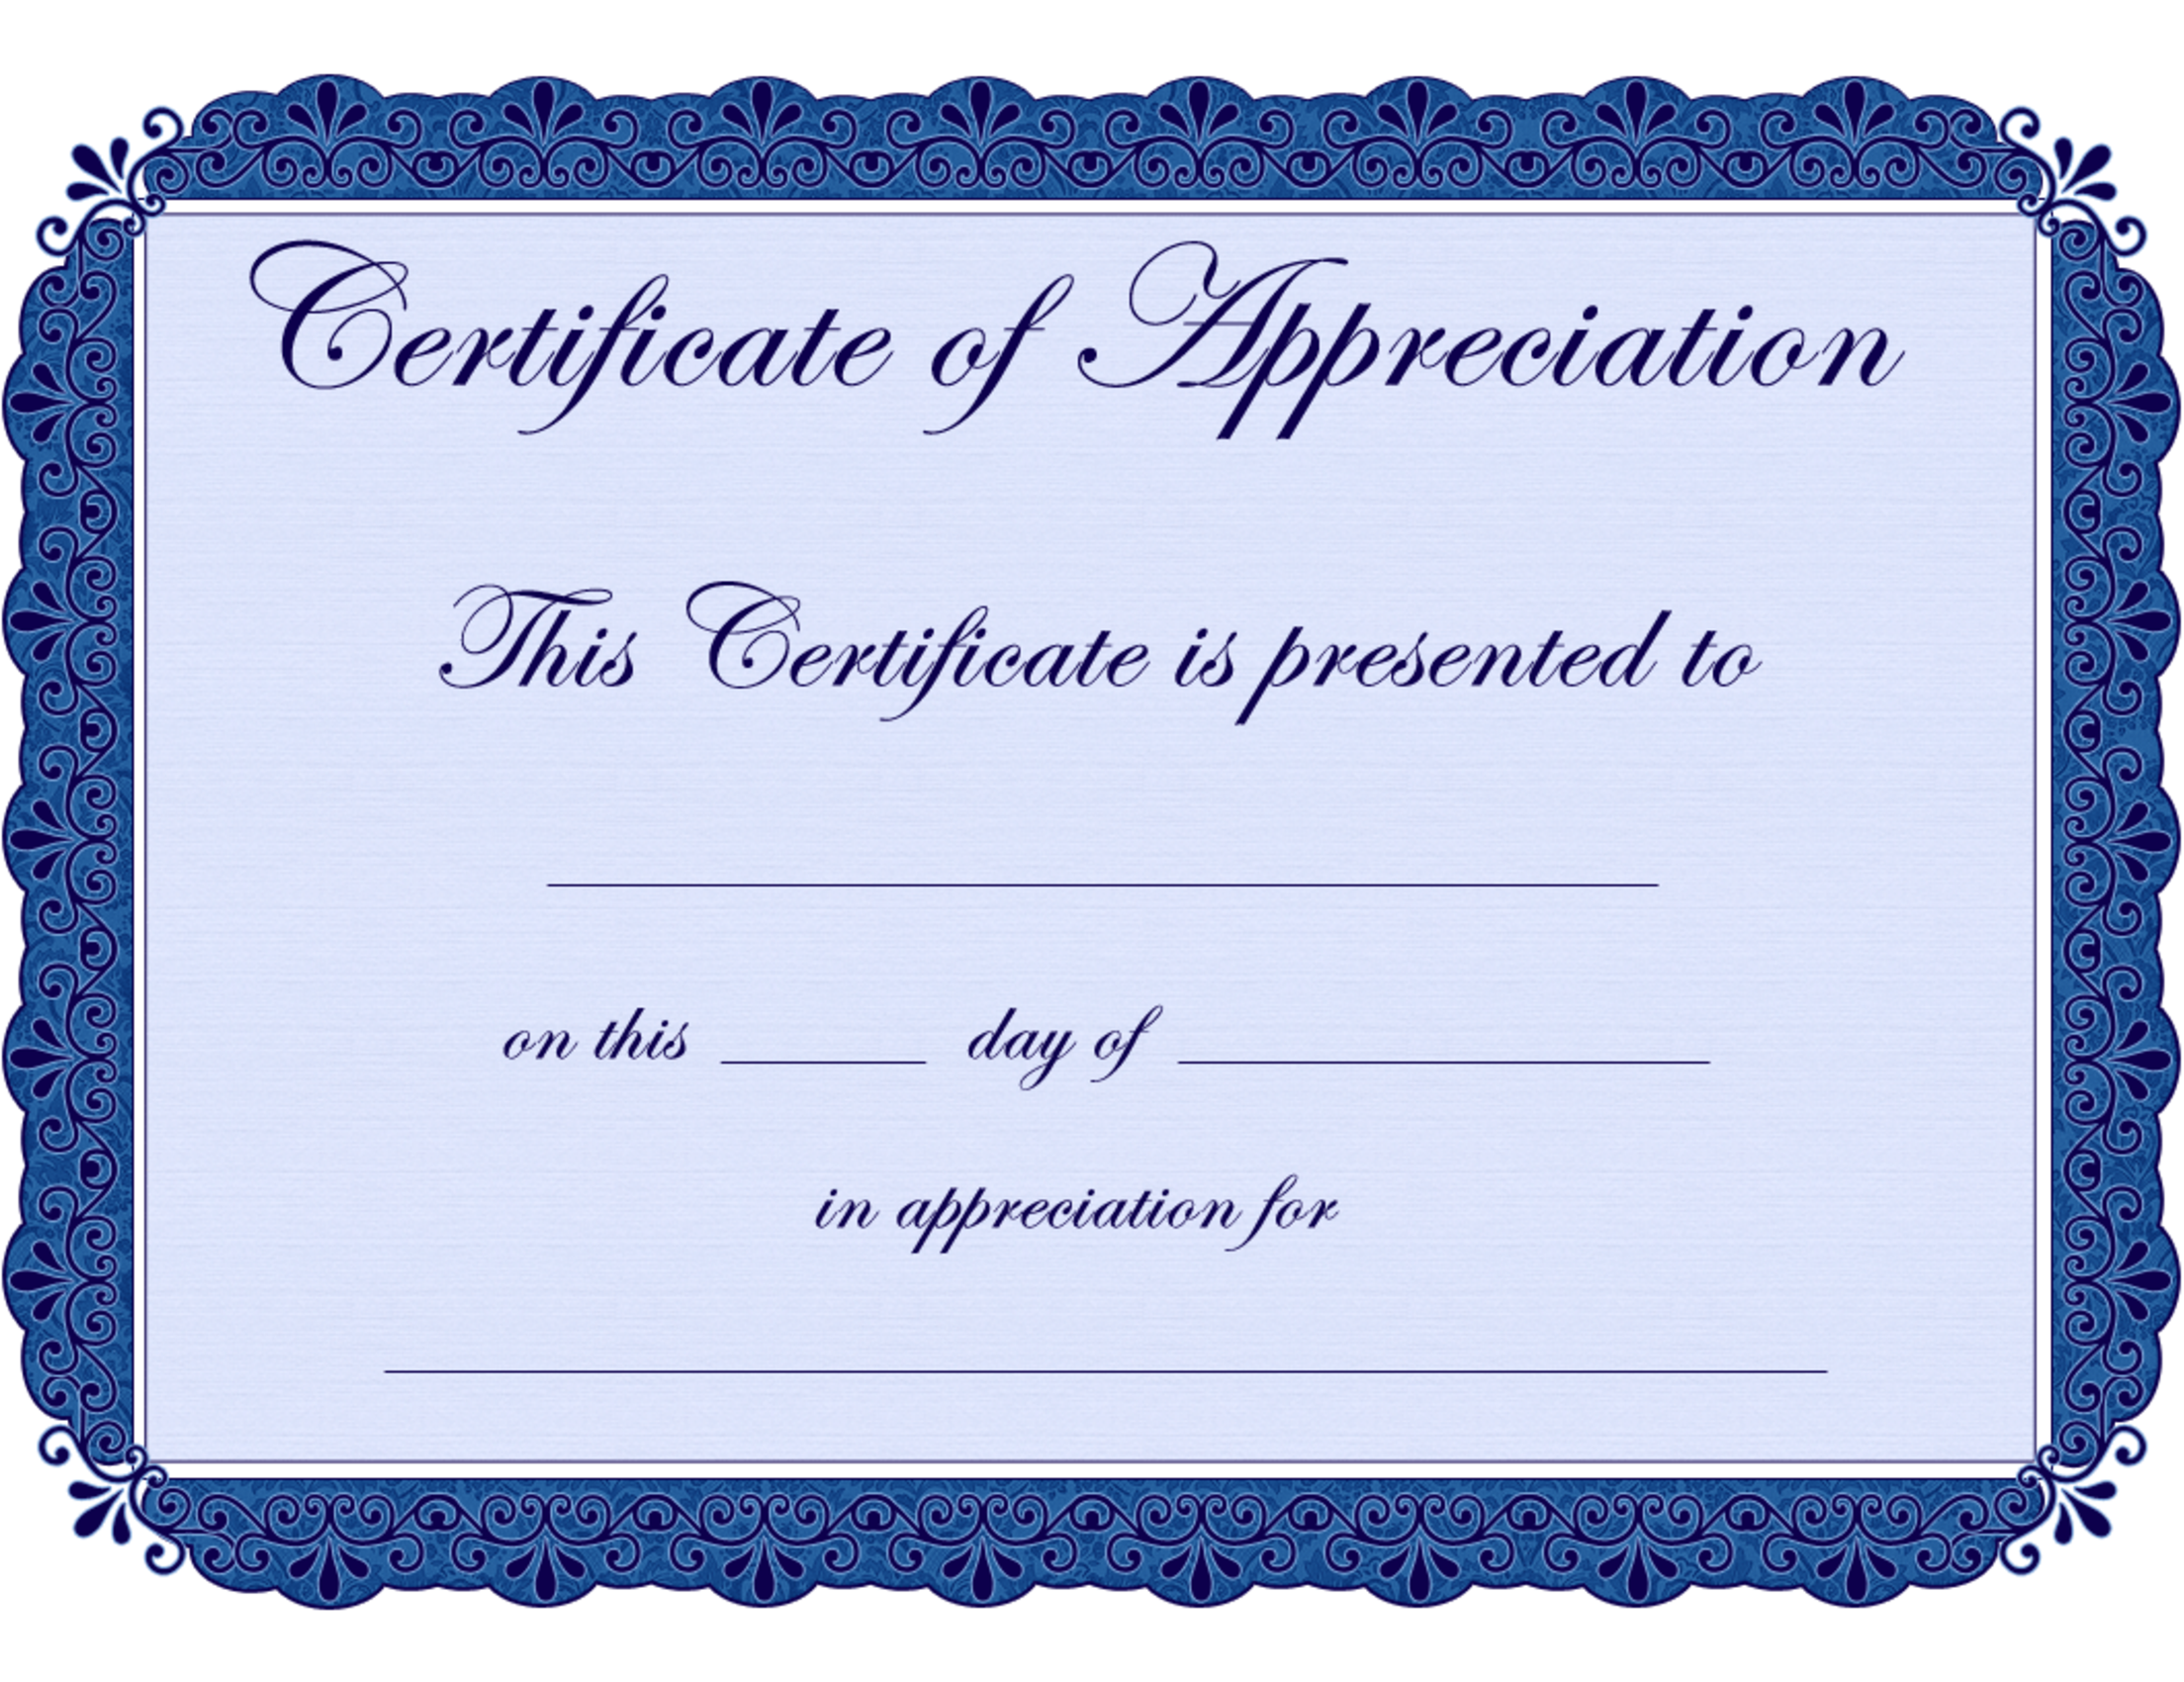 Free printable certificates certificate of appreciation certificate free printable certificates certificate of appreciation certificate yadclub Choice Image